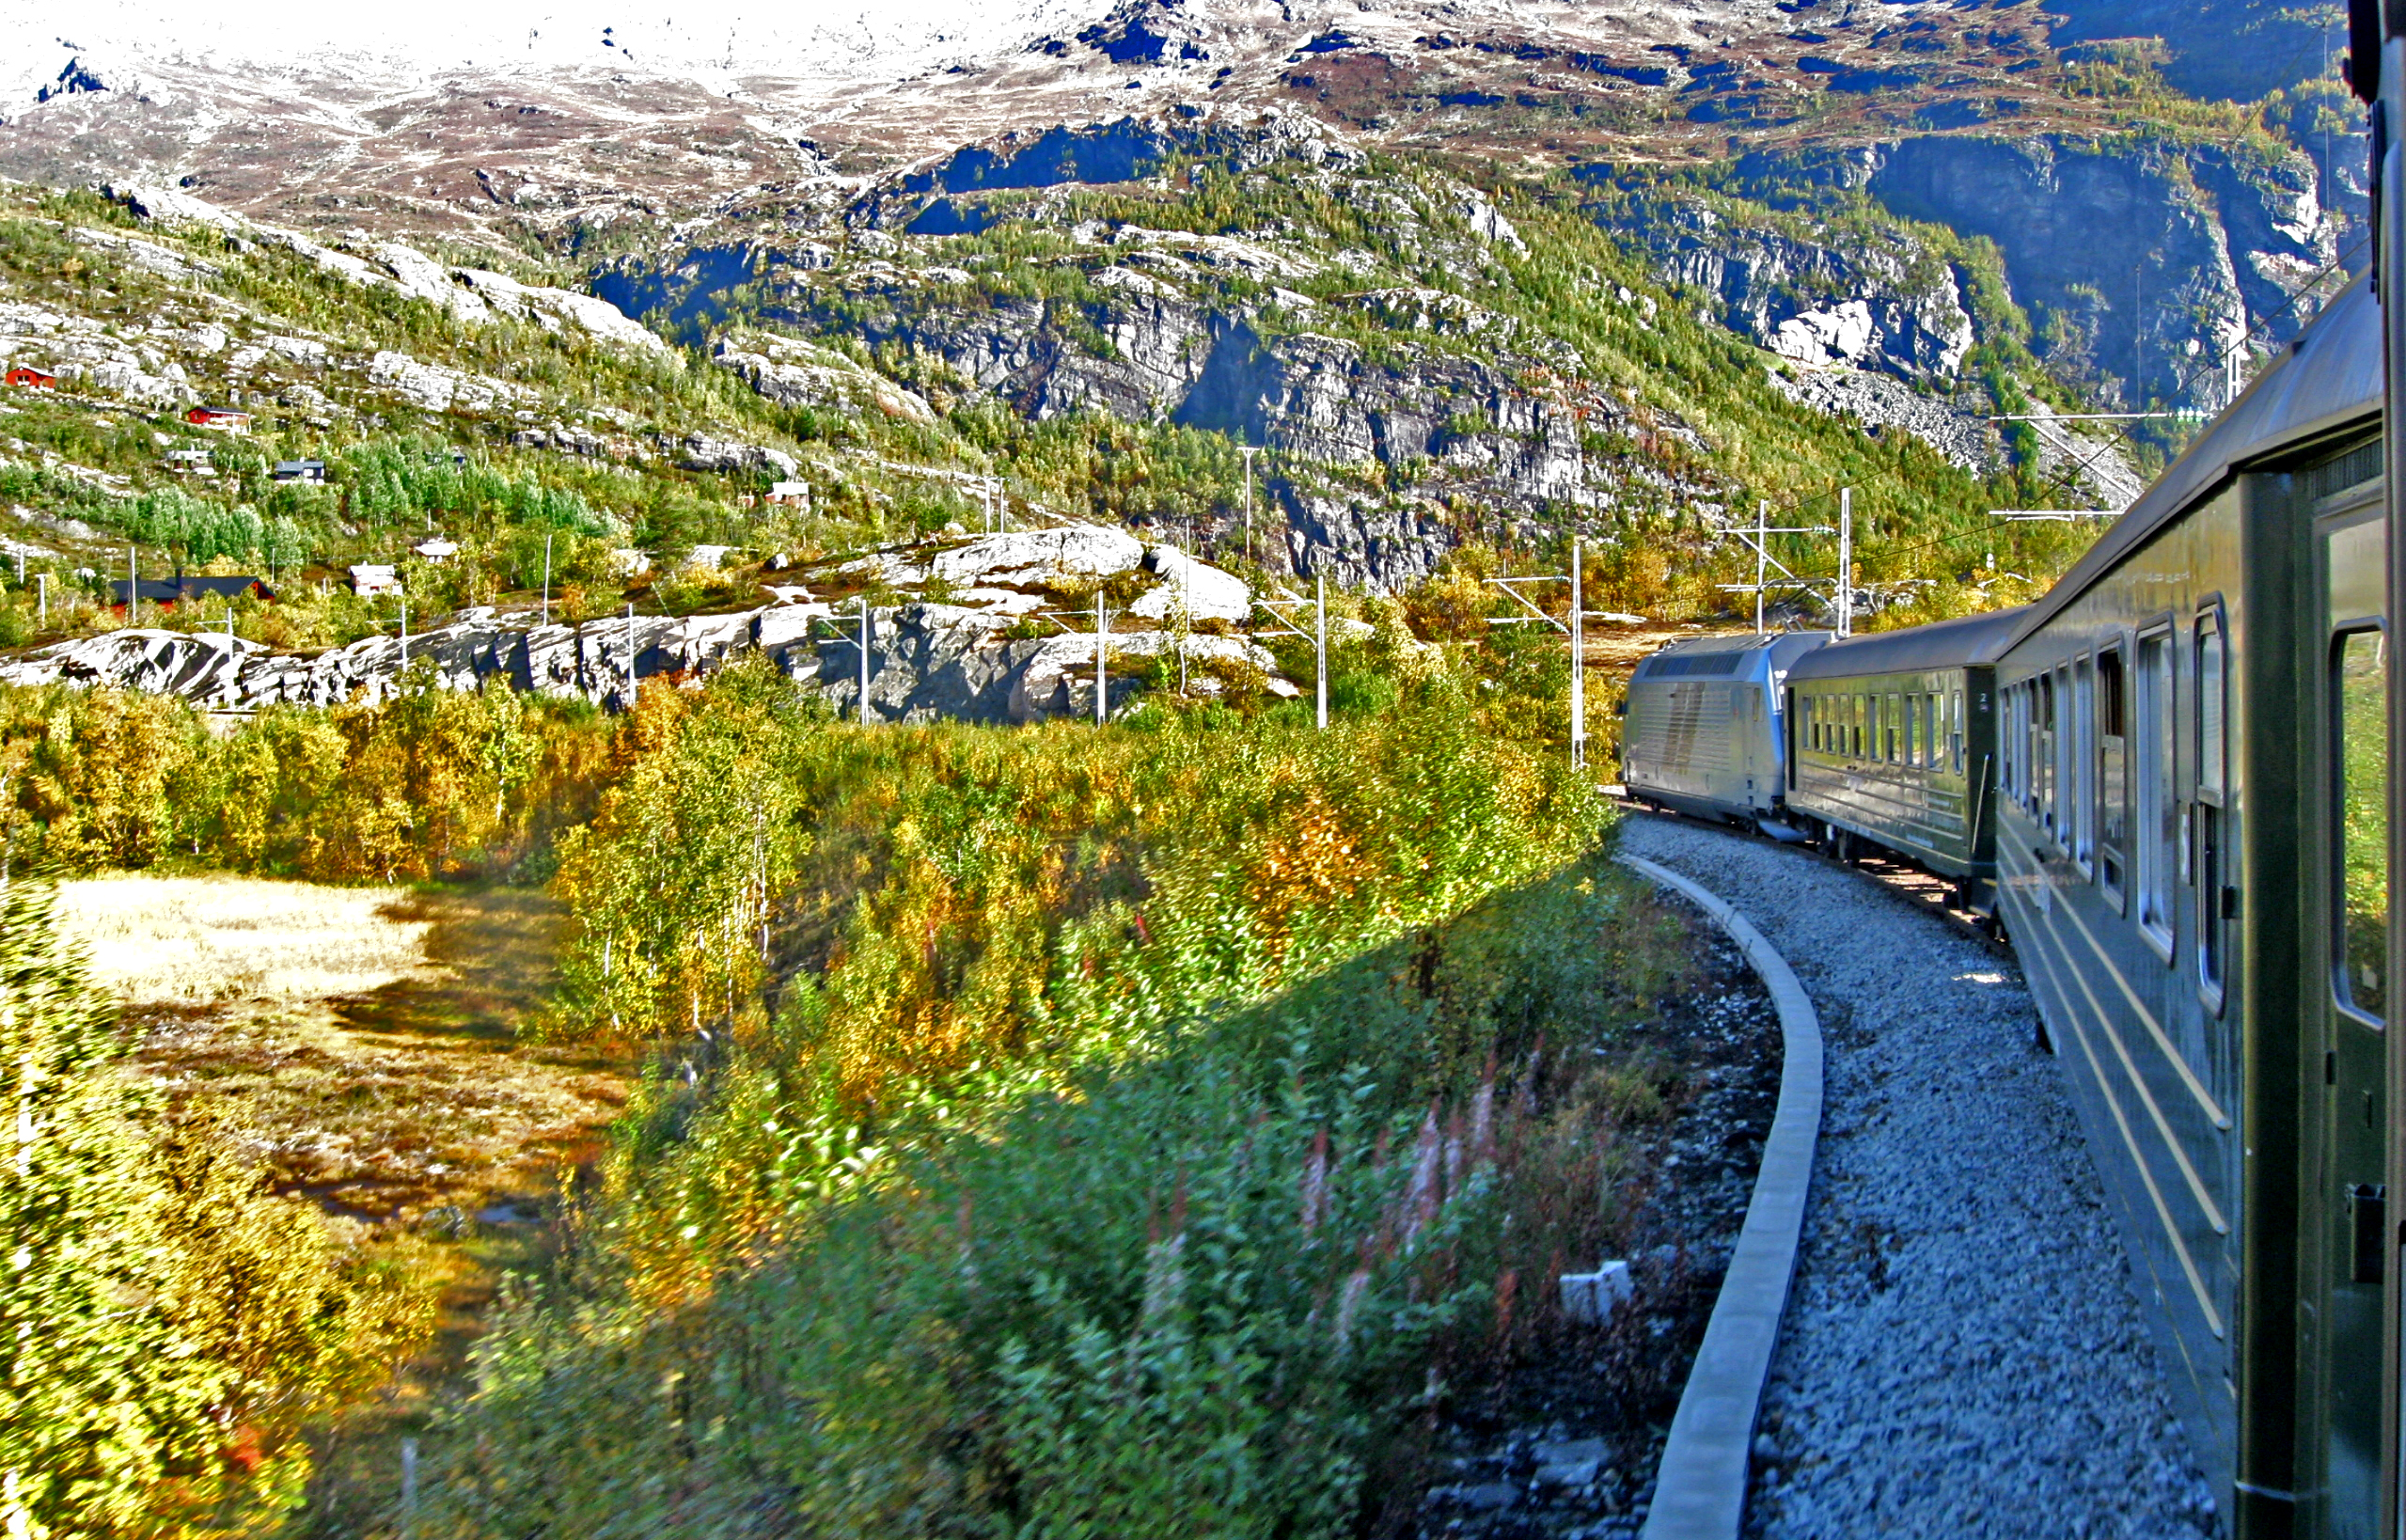 How To Travel Through Norway On A Budget